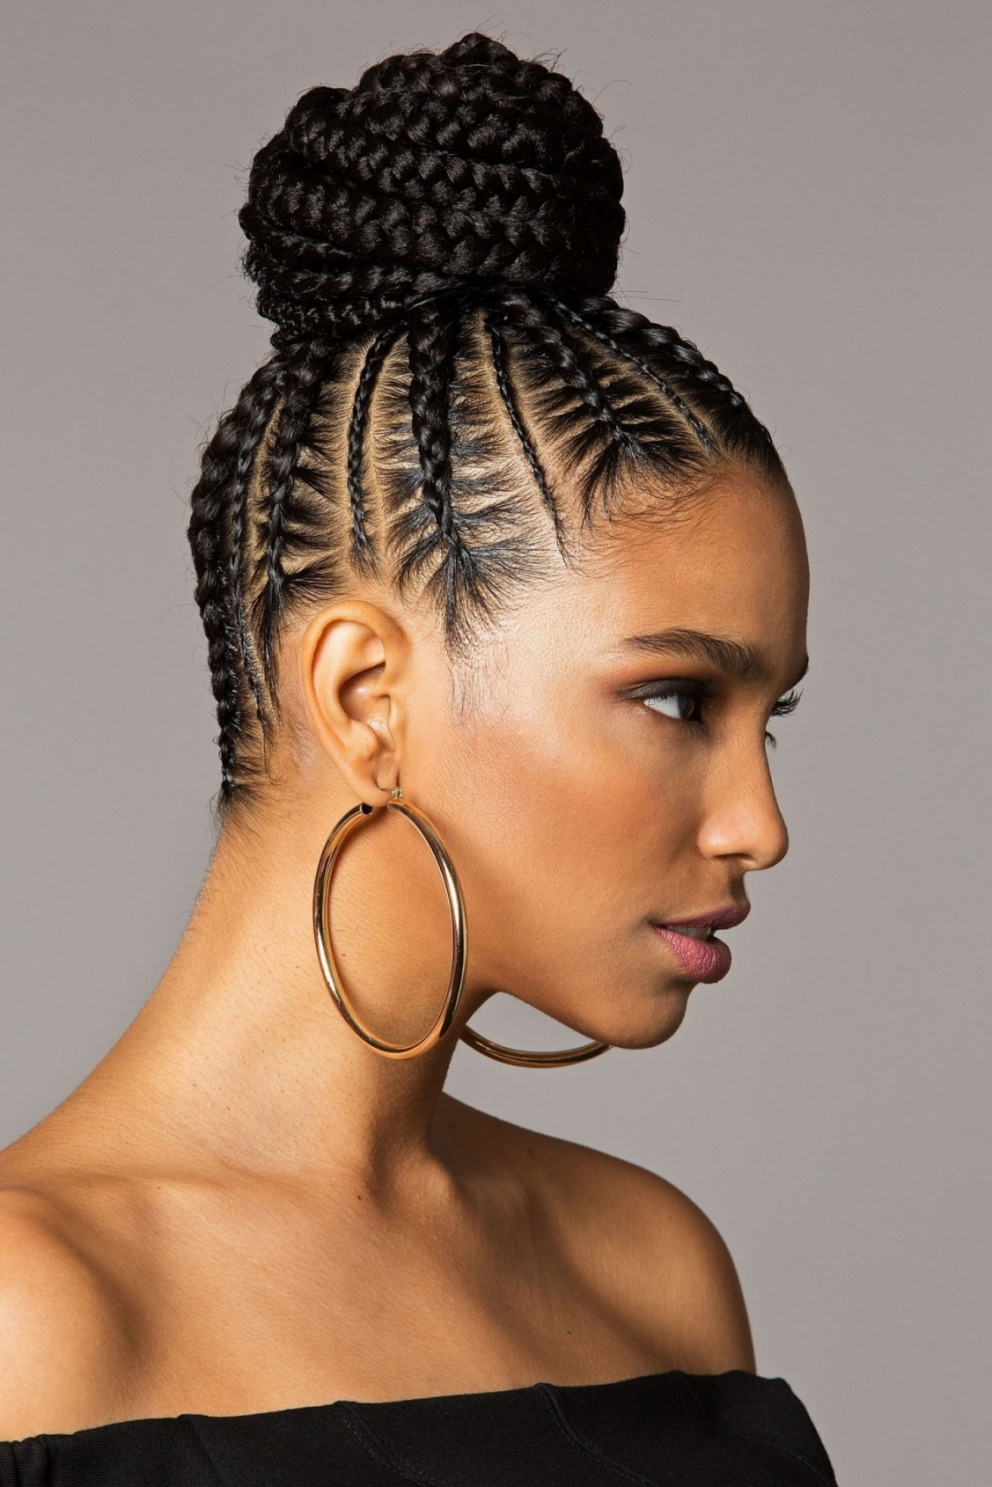 Updo Hairstyles For African American Women Braided Bun Hairstyles Pertaining To Widely Used African American Braided Bun Hairstyles (Gallery 1 of 15)